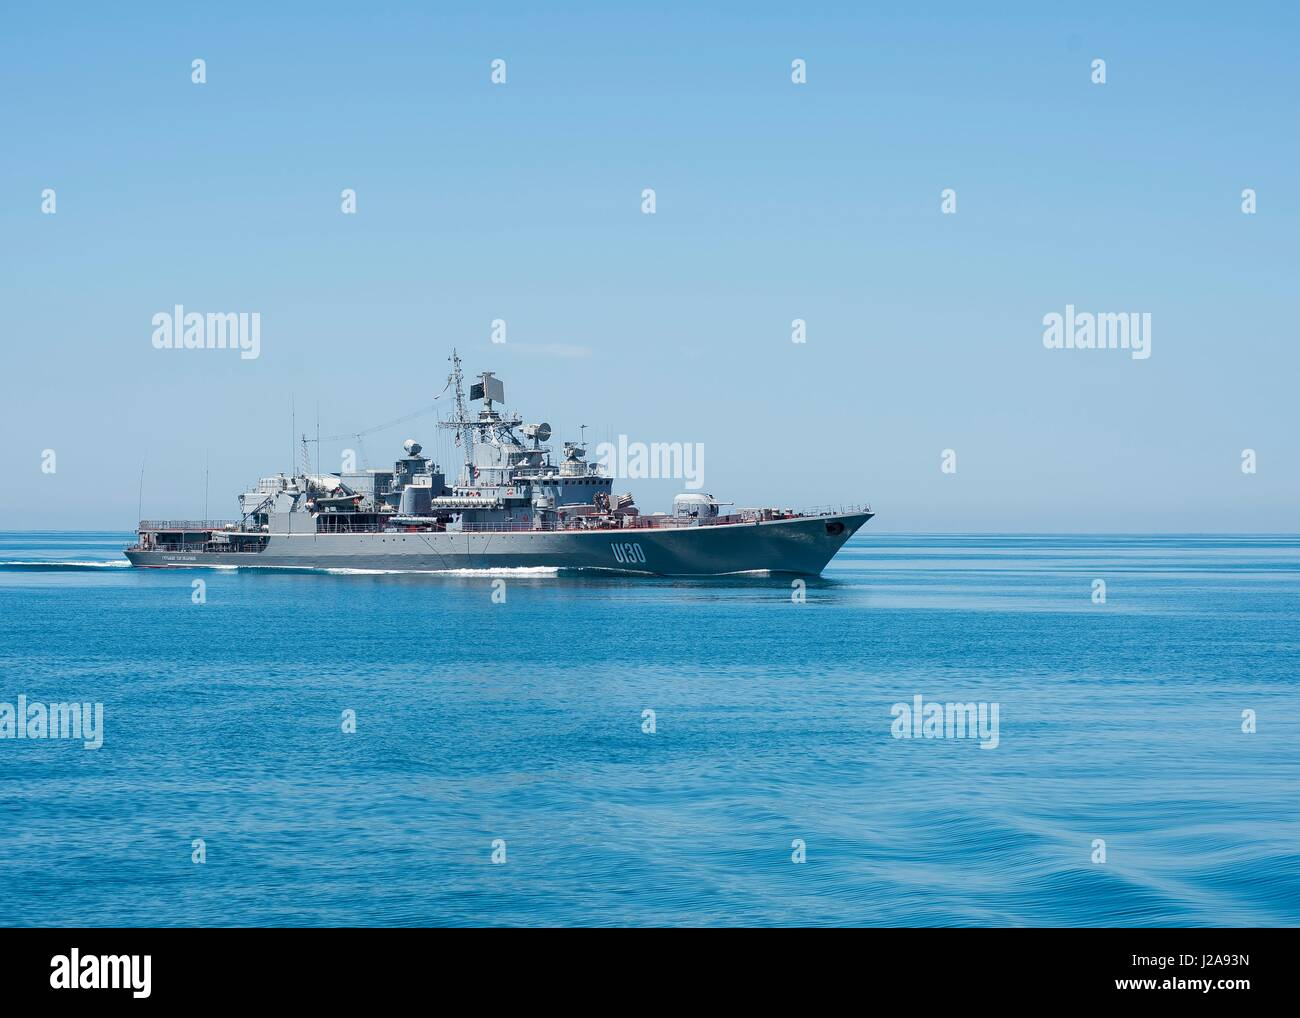 The Ukranian Navy Nerei Menzhinskiy-class frigate Hetman Sahaydachniy steams underway June 1, 2015 in the Black - Stock Image